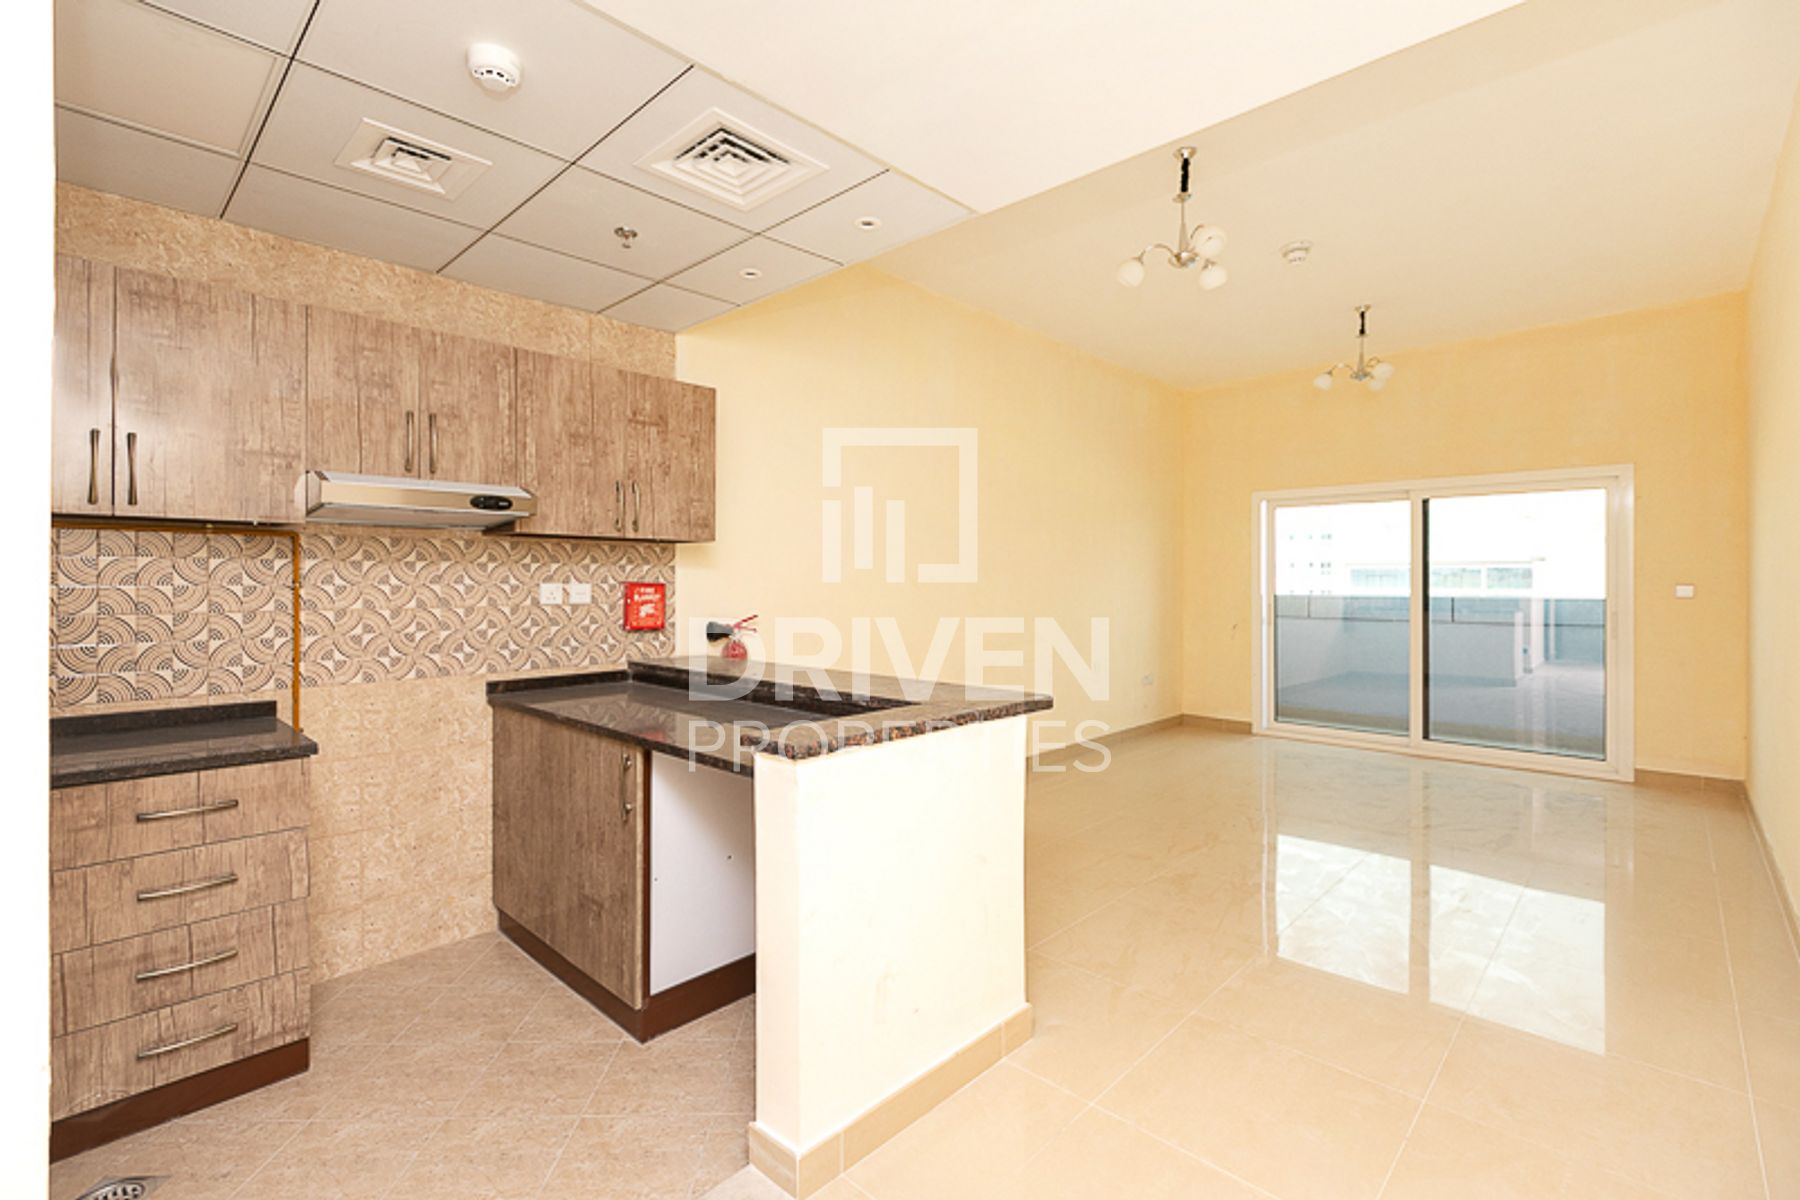 Studio for Rent in UniEstate Prime Tower - Jumeirah Village Circle